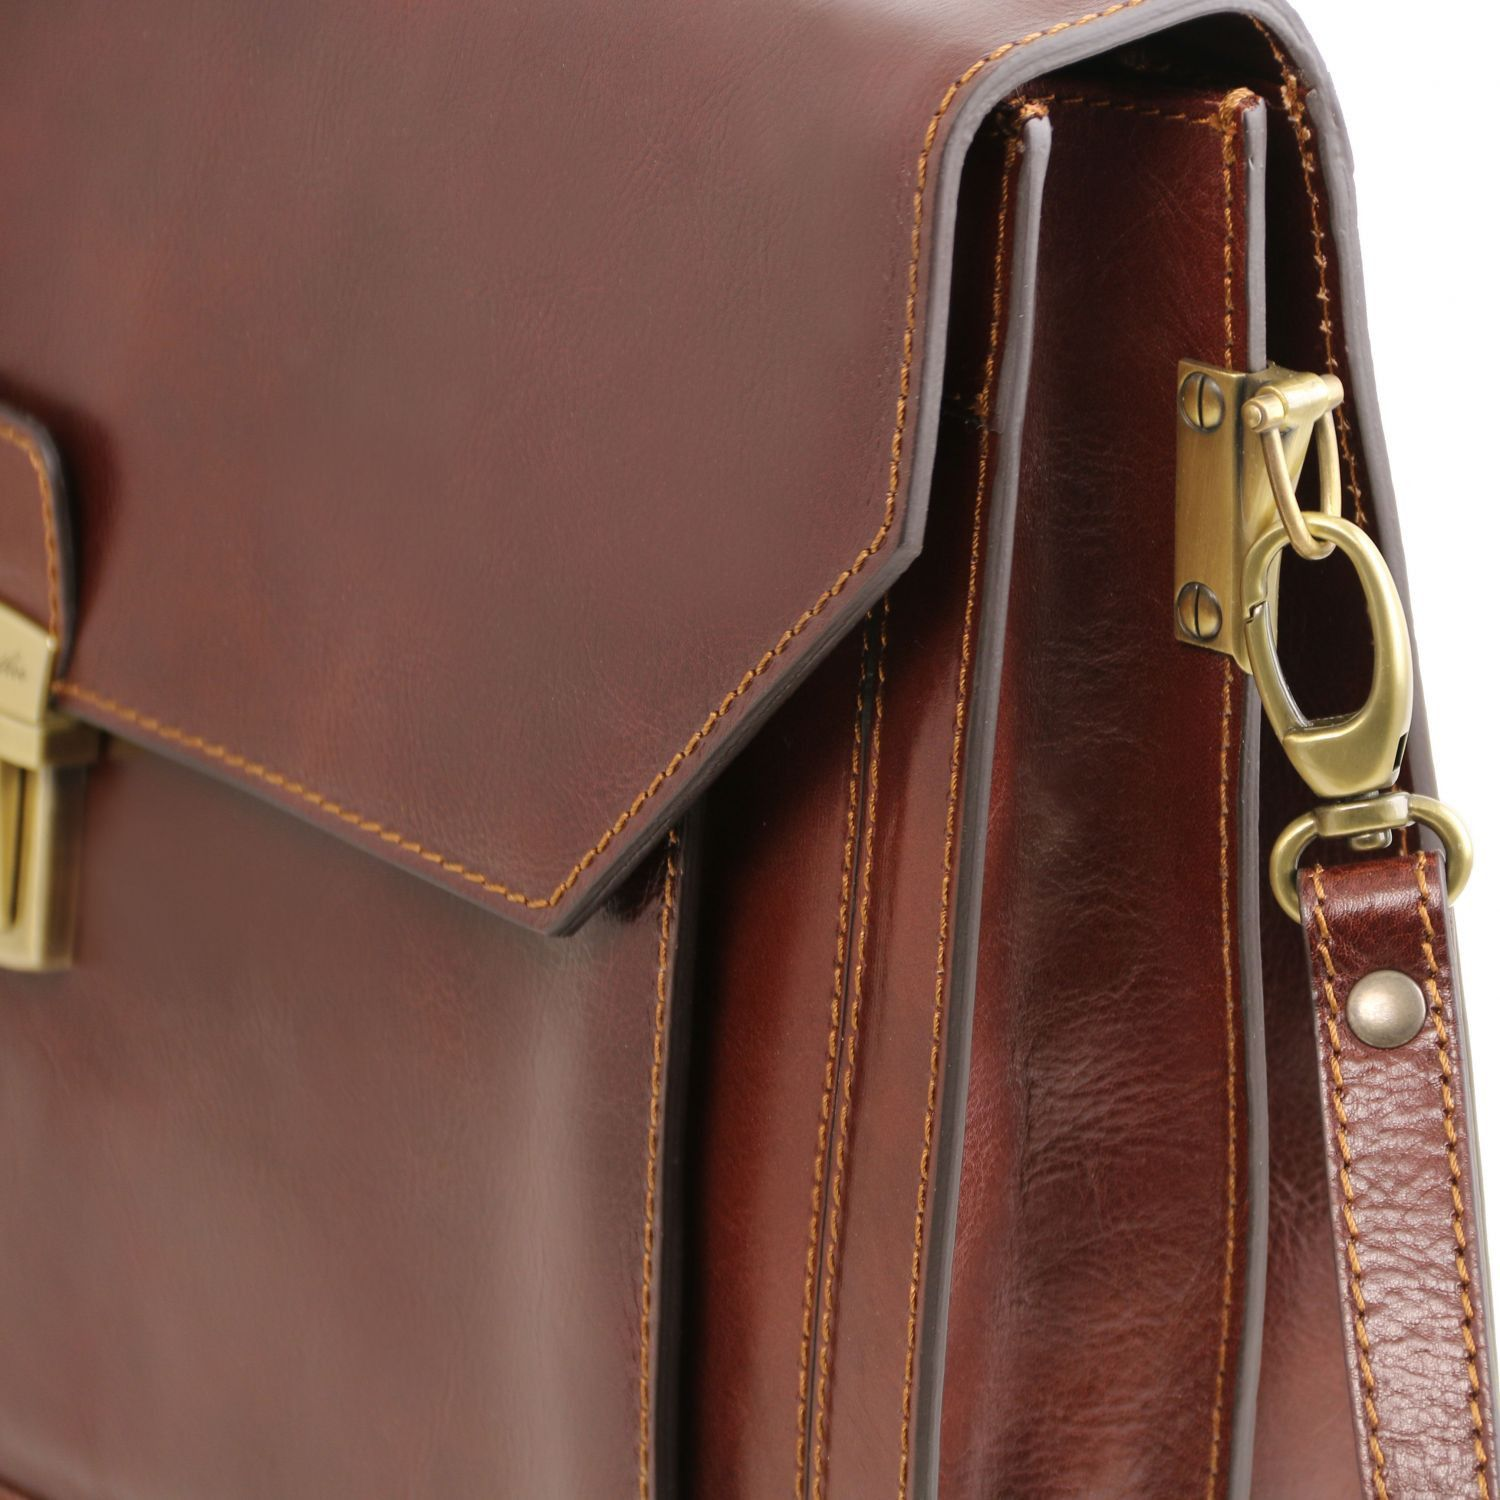 Napoli - 2 compartments leather briefcase with front pocket (TL141348) - Leather briefcases | DILUSSOBAGS